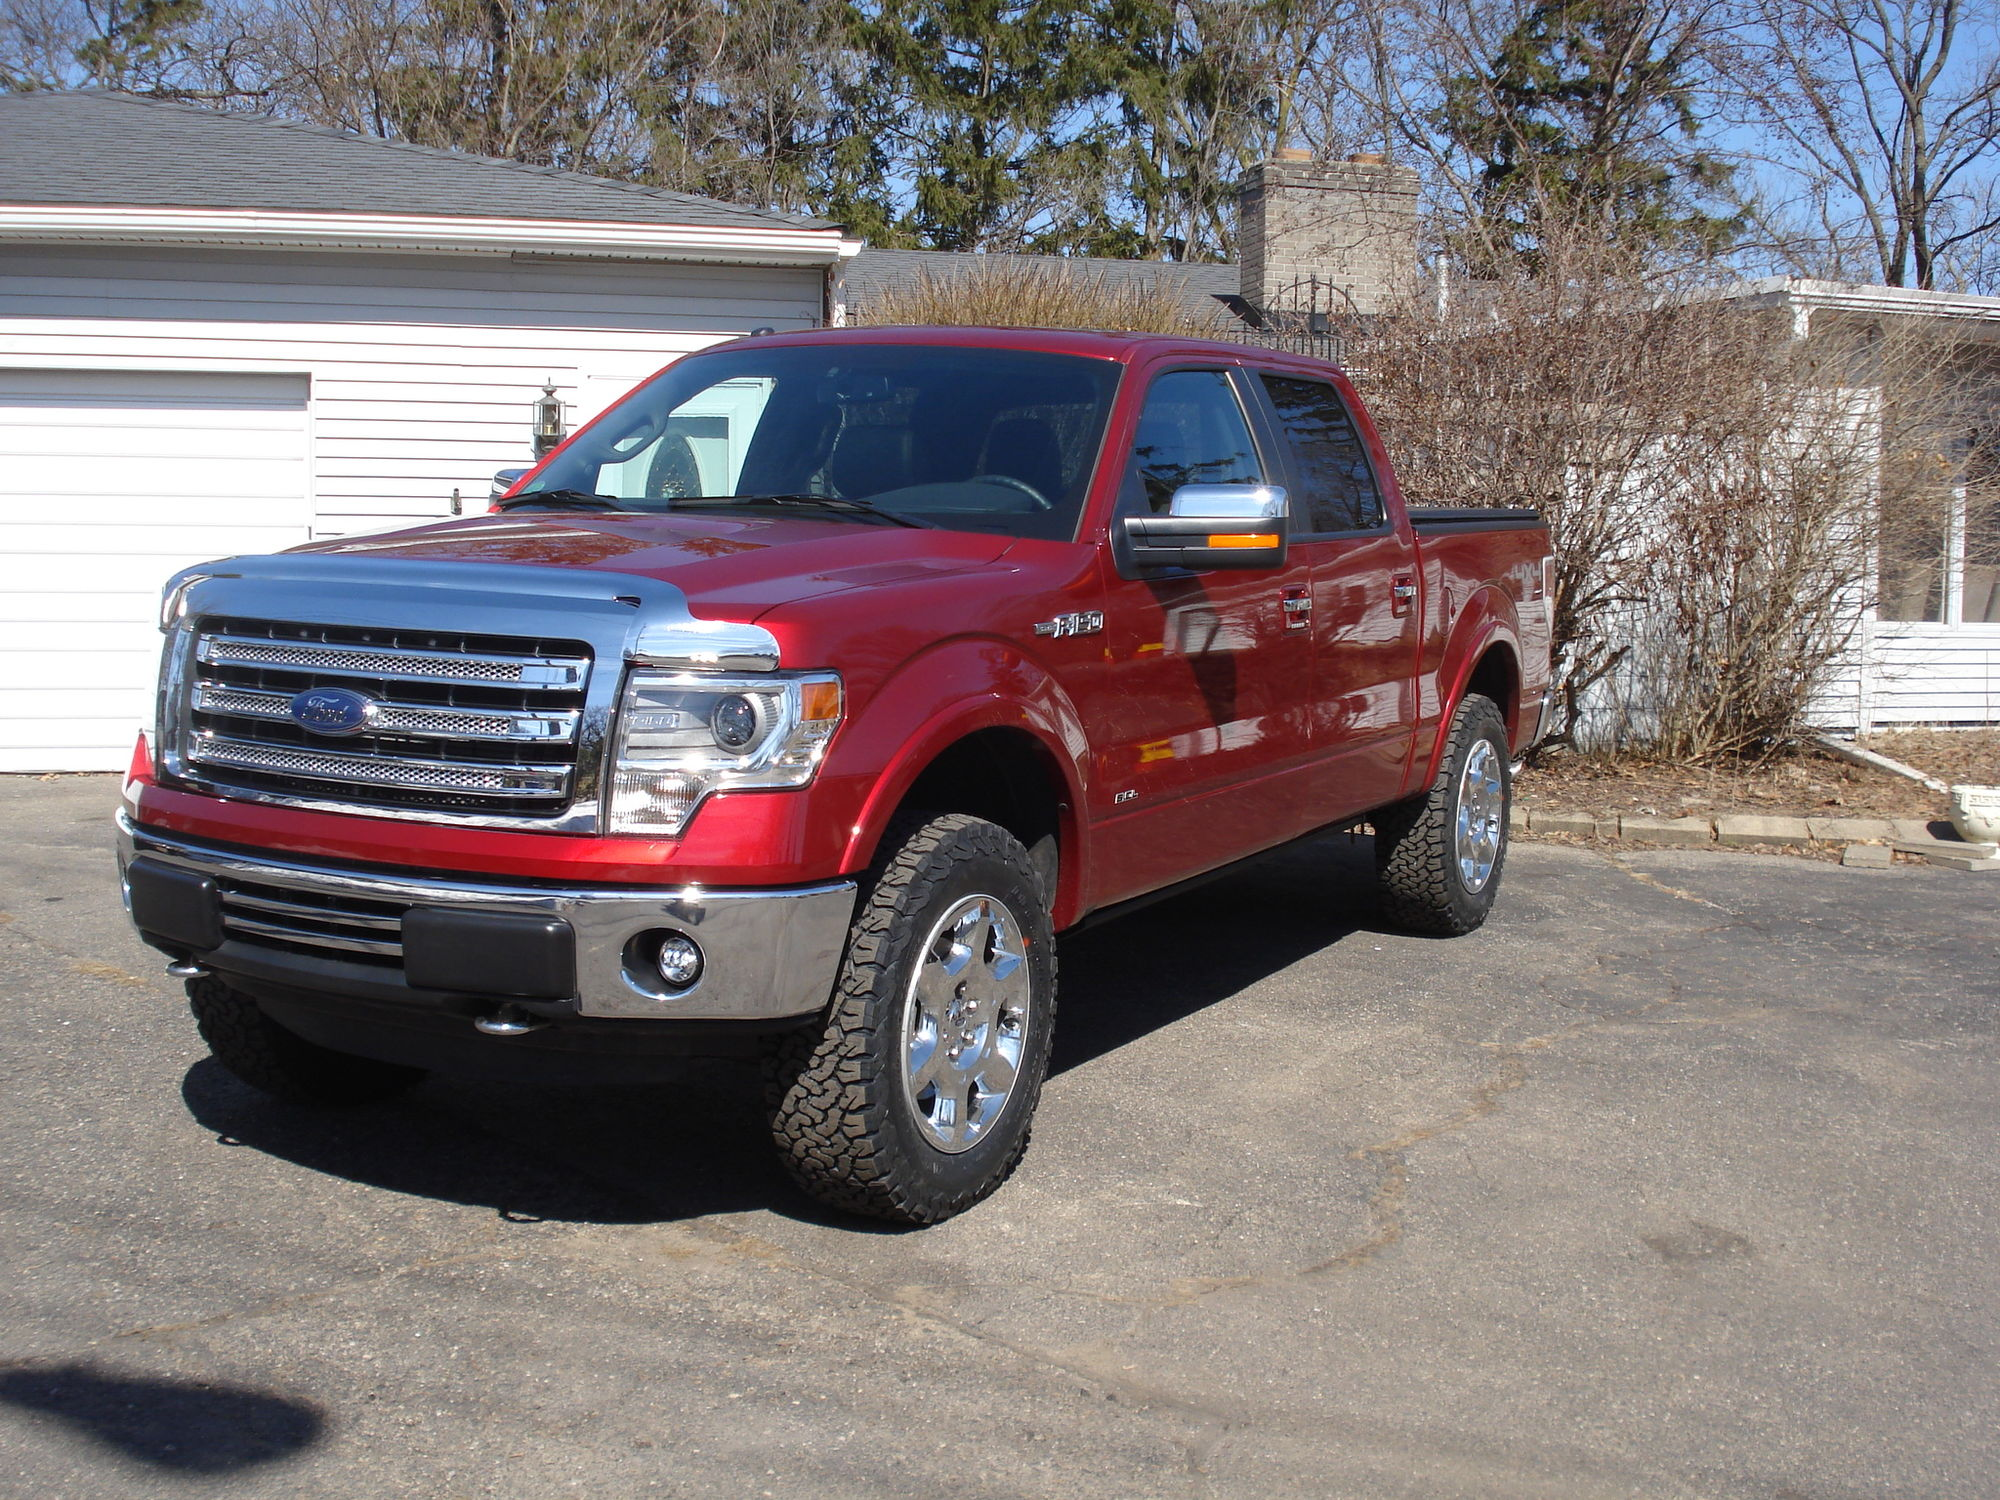 Bf goodrich all terrain k02 page 11 ford f150 forum community of ford truck fans